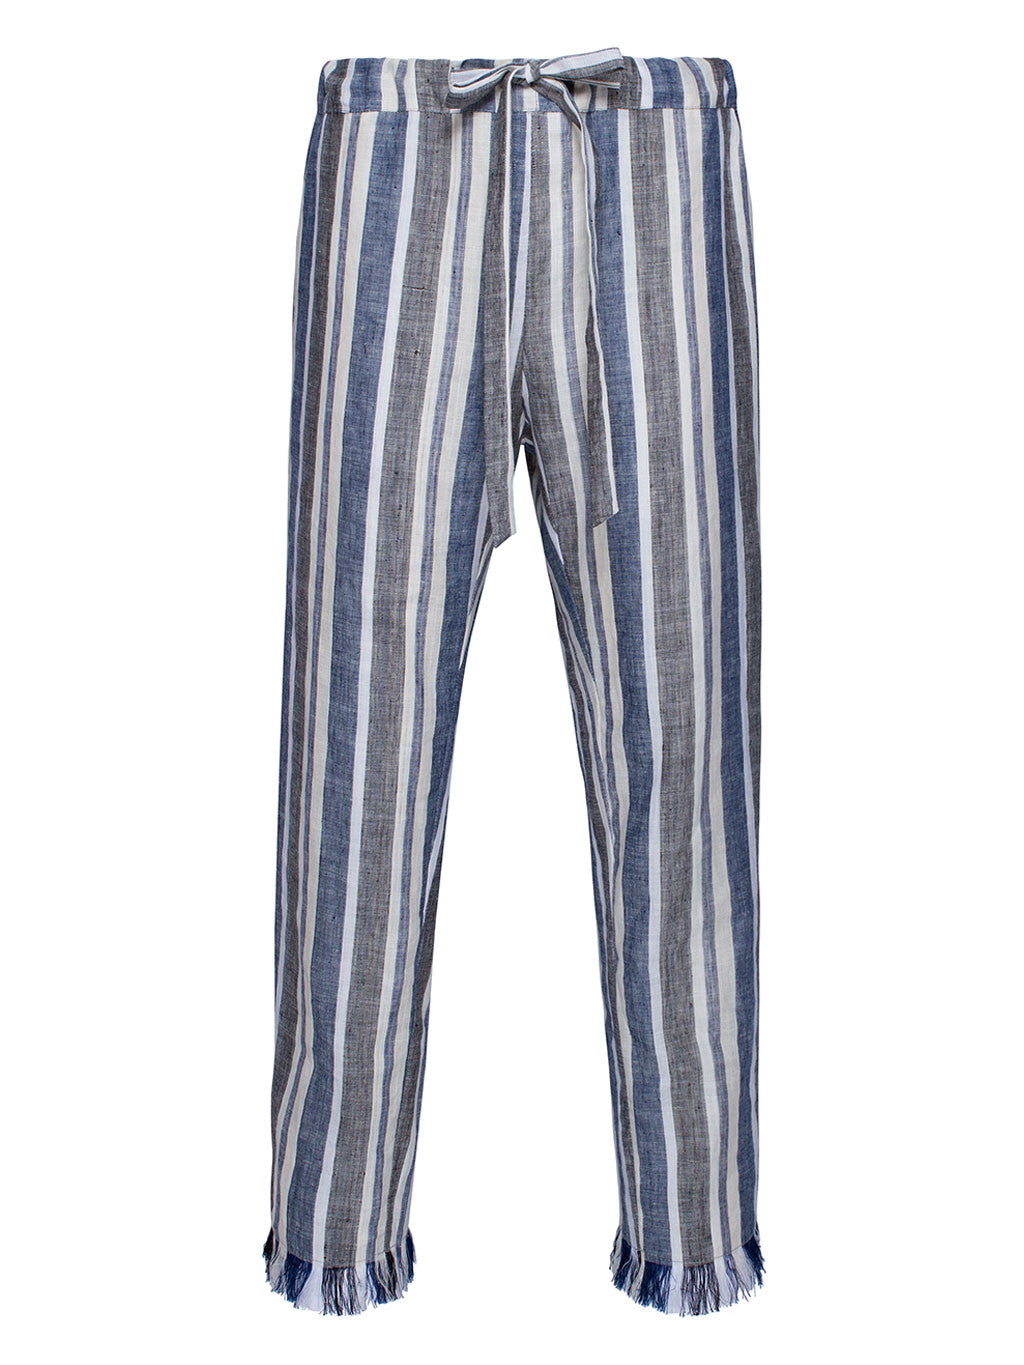 TIMES ARE CHANGING PANT - Little Joe Woman by Gail Elliott E-Boutique  - 1